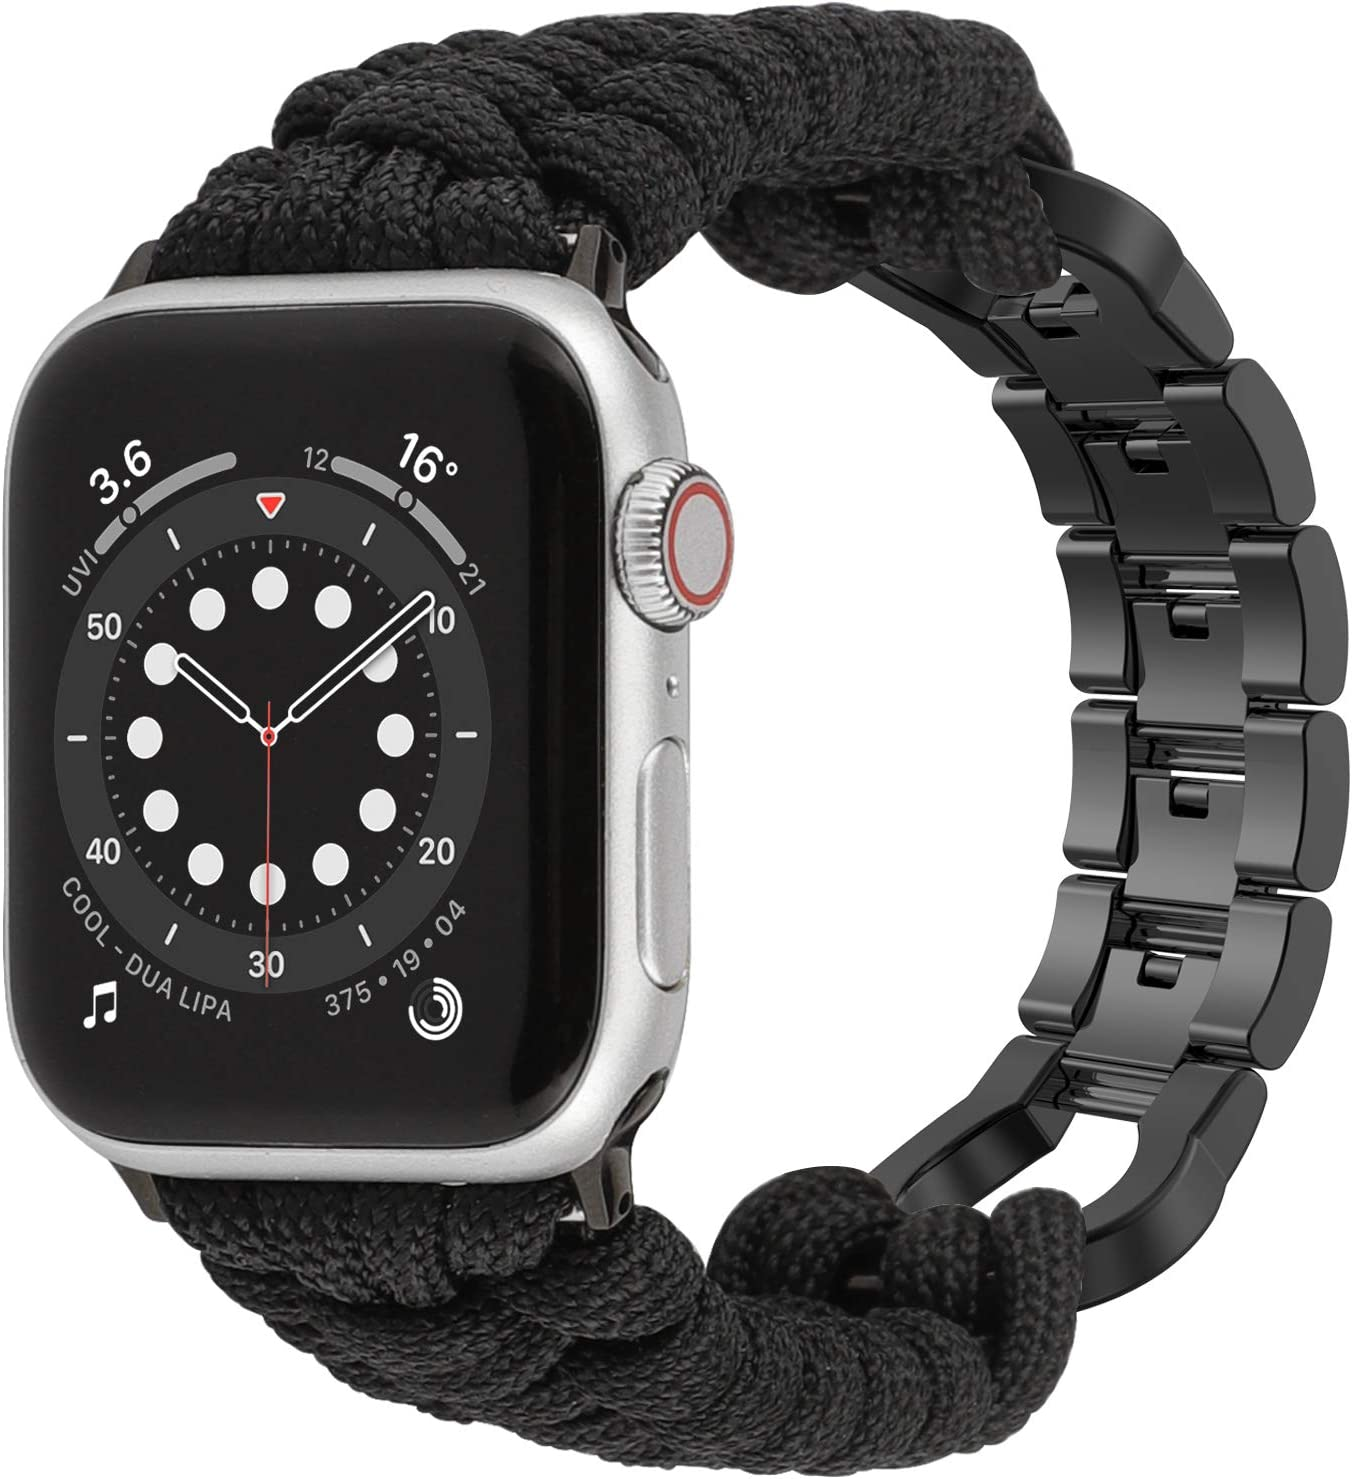 Moolia Paracord Watch Band Compatible With Apple Watch 42mm 44mm for iWatch Series 6 5 4 3 2 1 SE, Men Handcrafted Braided Paracord Sport Replacement Strap With Stainless Steel Buckle, Black